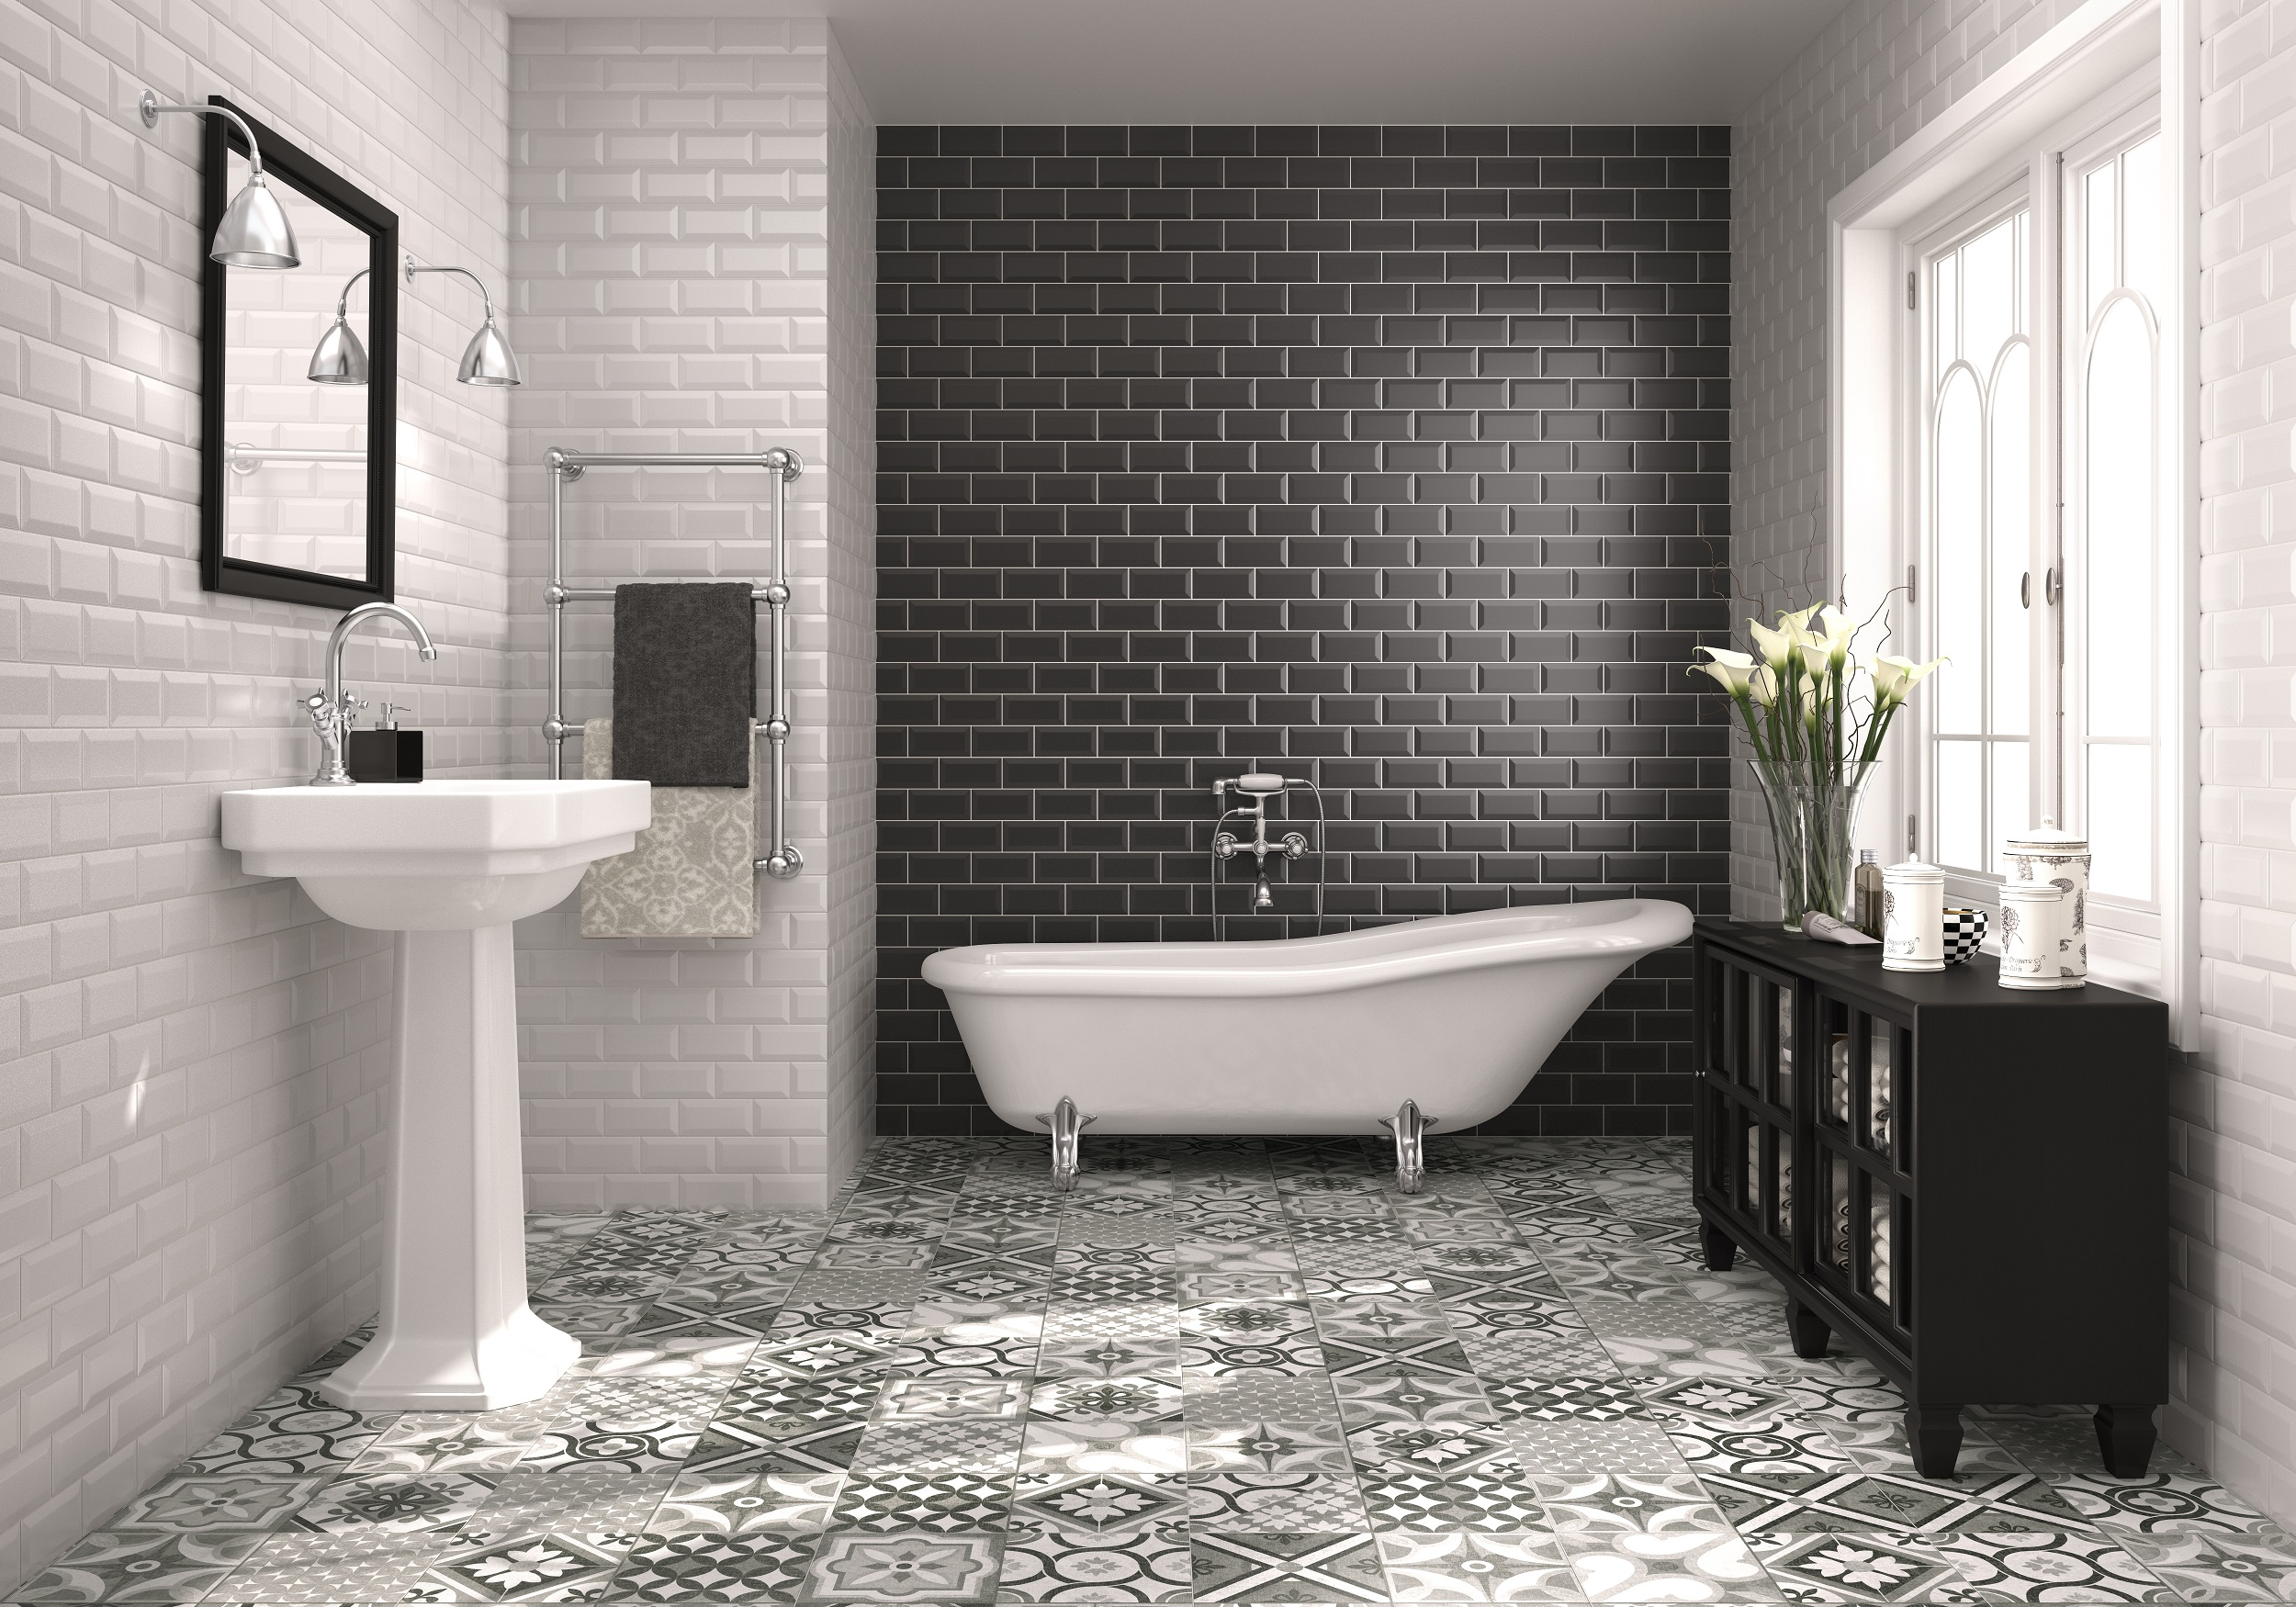 Top macro and micro bathroom trends of 2015